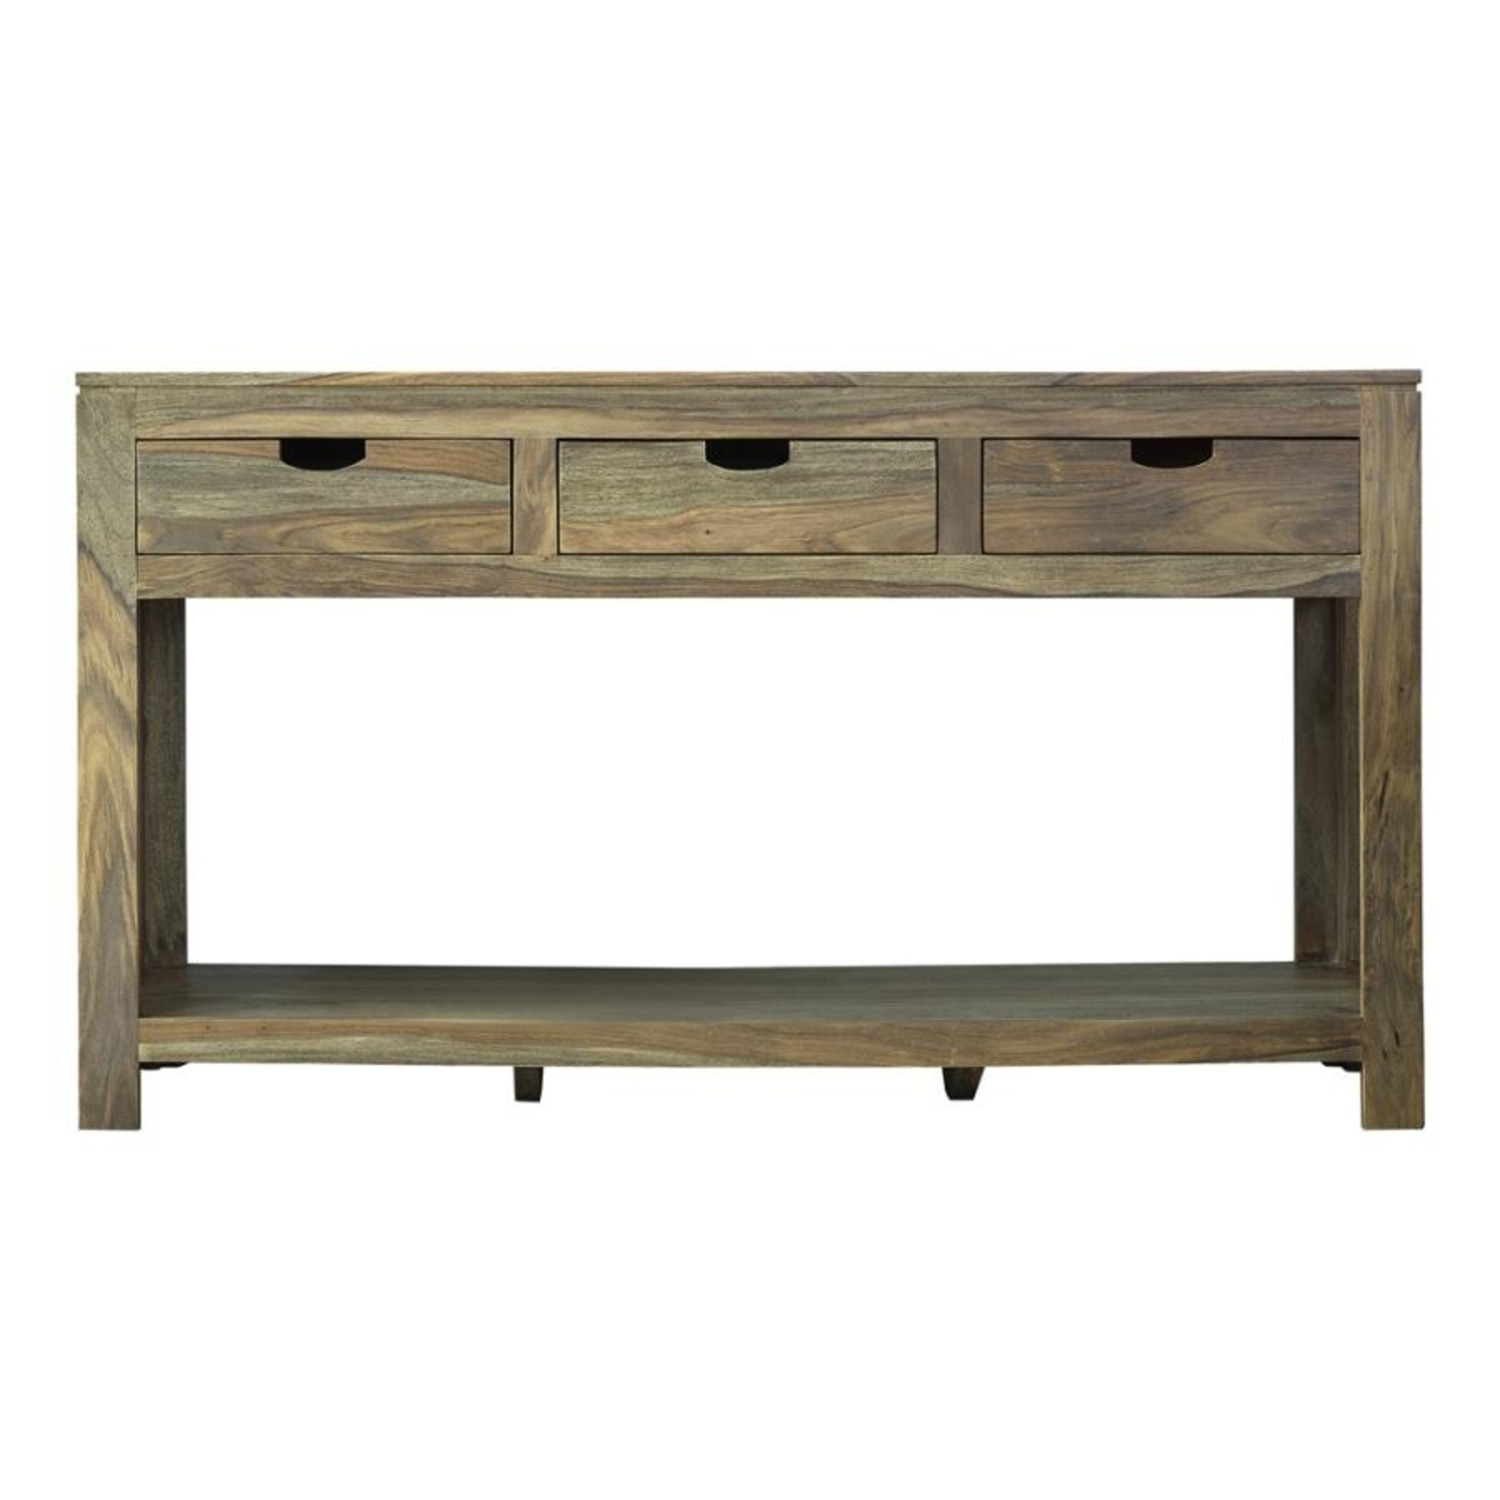 Console Table In Sheesham Grey Finish W/ 3 Drawers - image-0